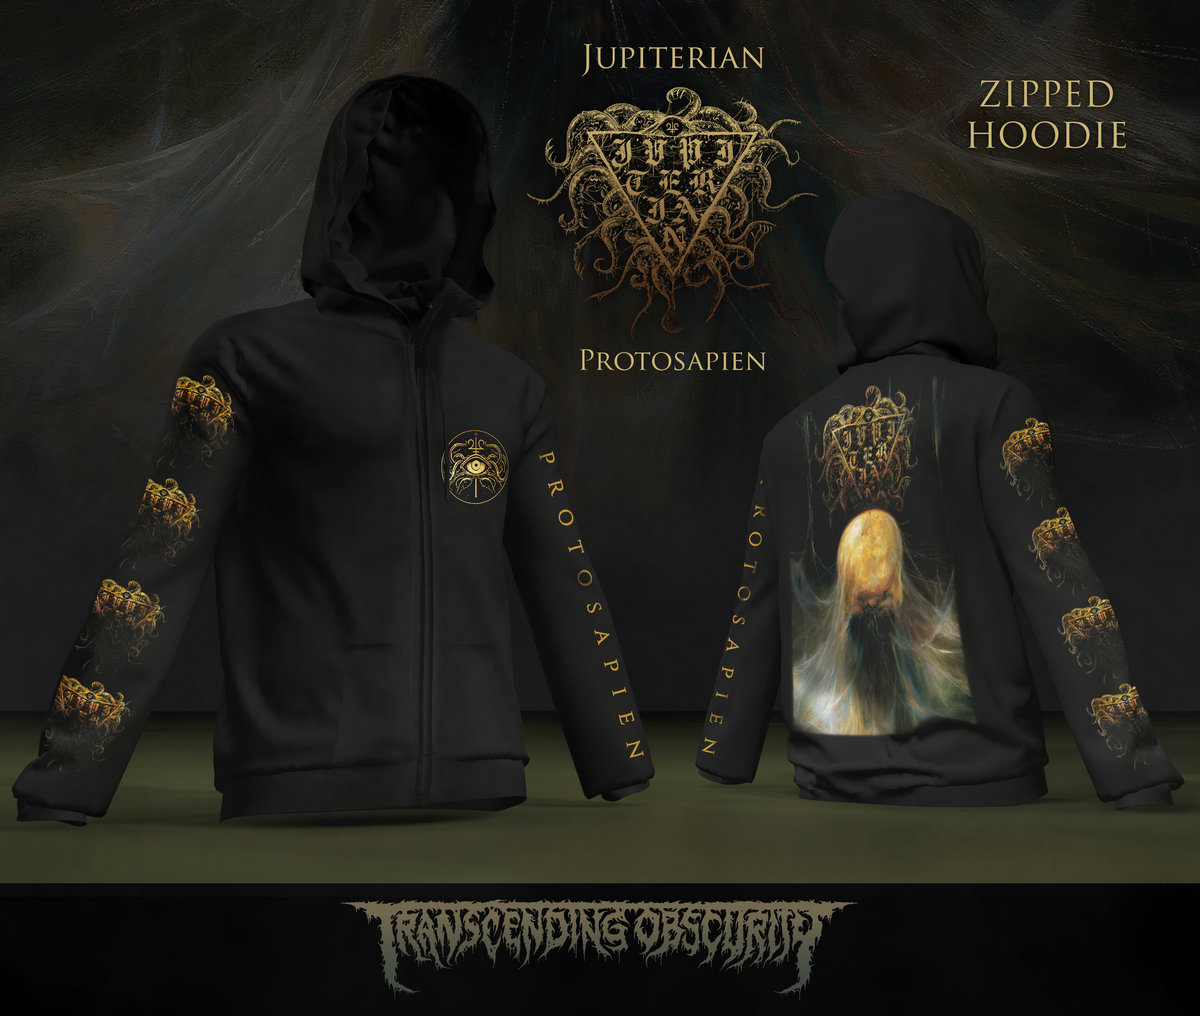 JUPITERIAN - Protosapien Zipped Hoodie (Limited to 50)